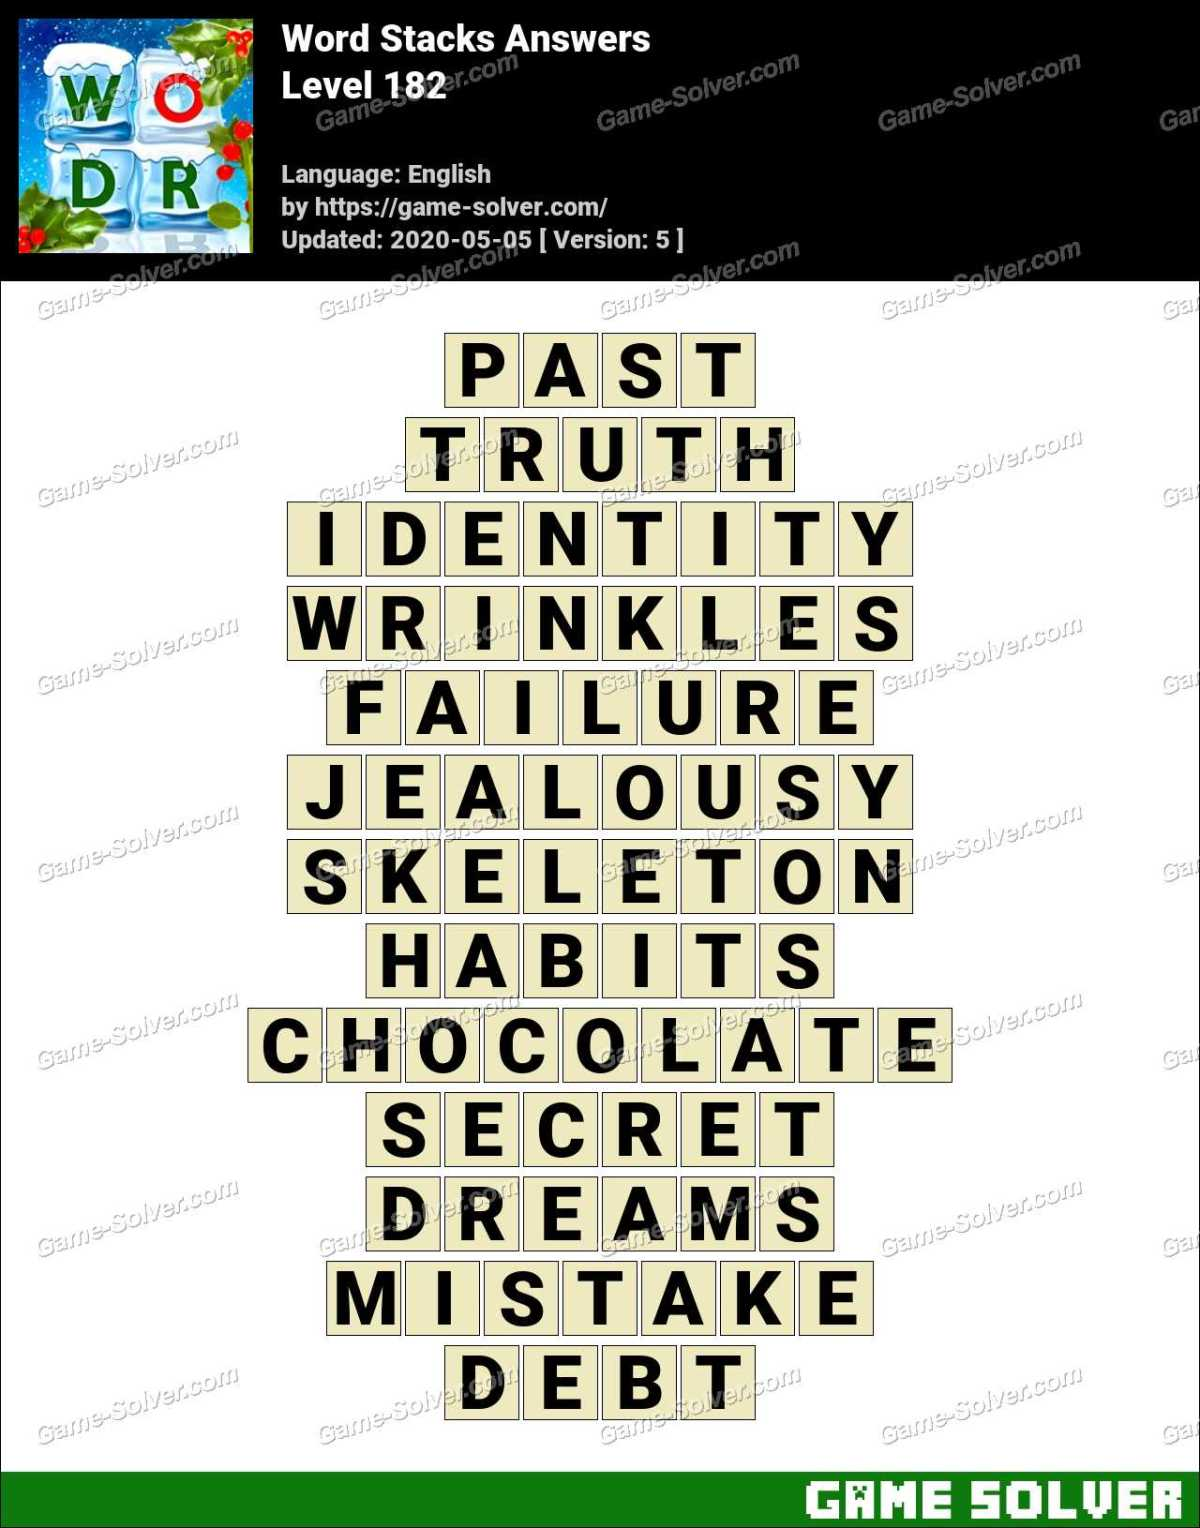 Word Stacks Level 182 Answers Game Solver